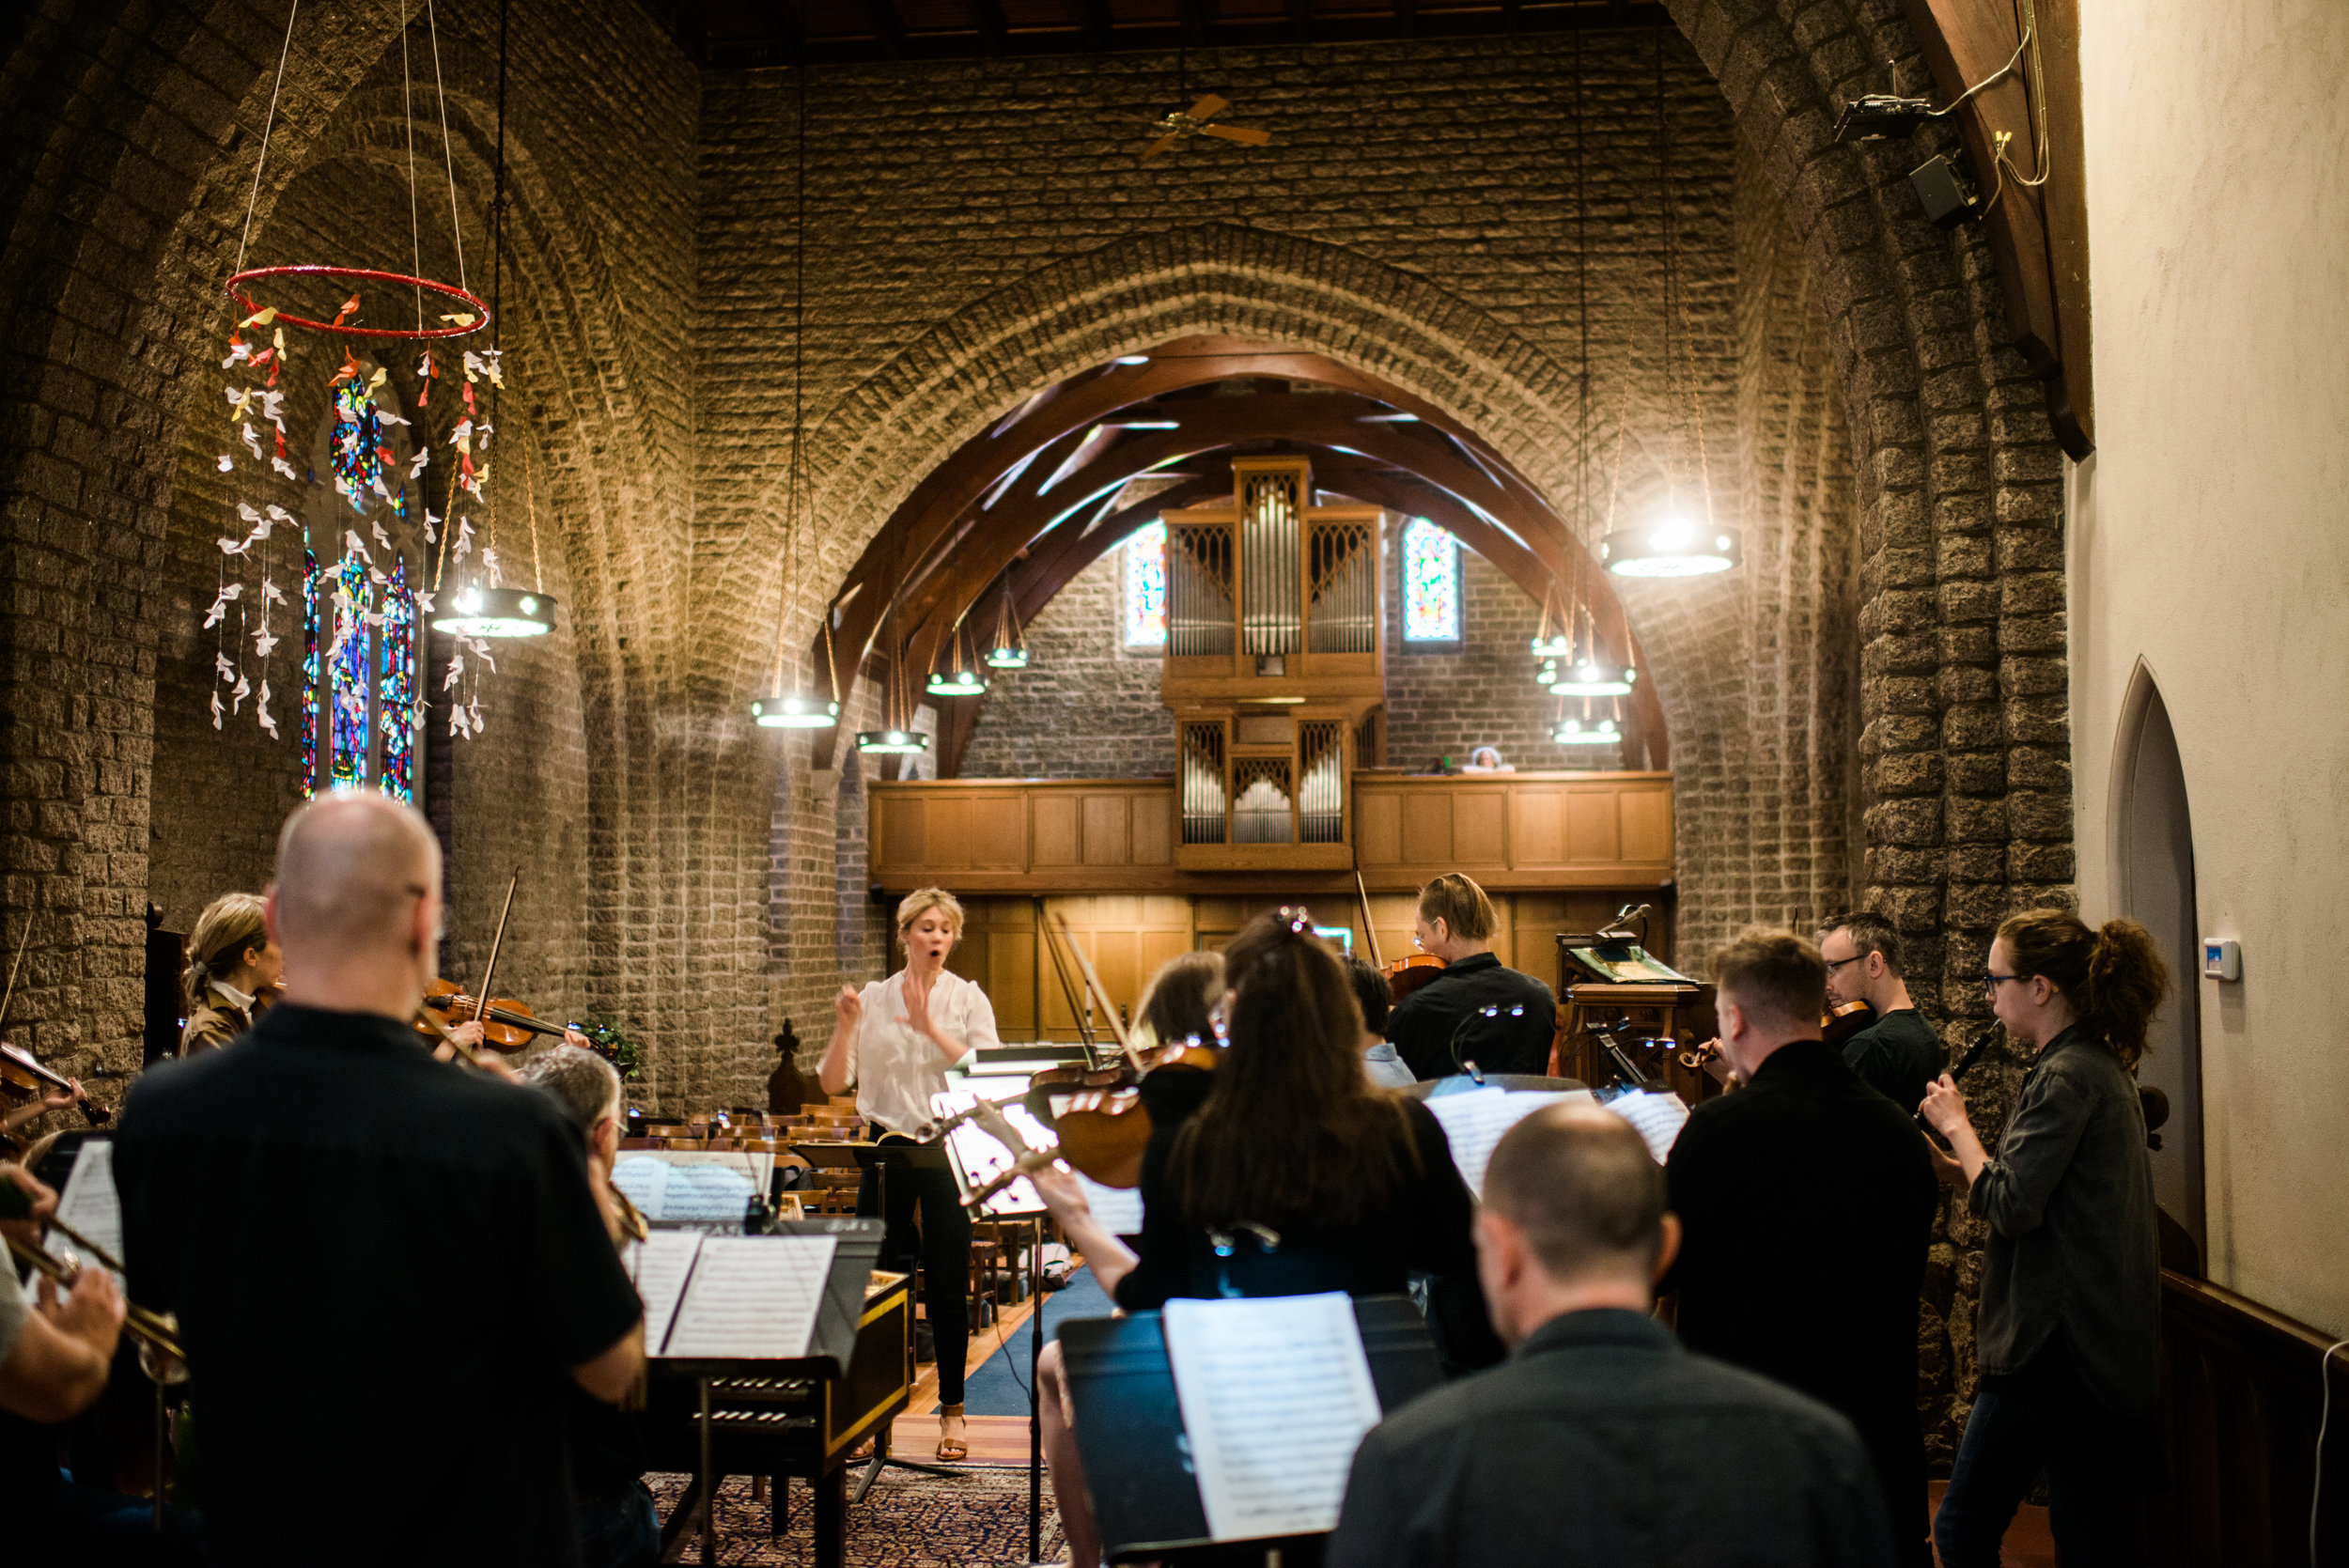 """""""The performances were magnificent, some of the best Bach playing I've heard anywhere."""" - Allan Kozinn, former music critic and culture writer for The New York Times"""